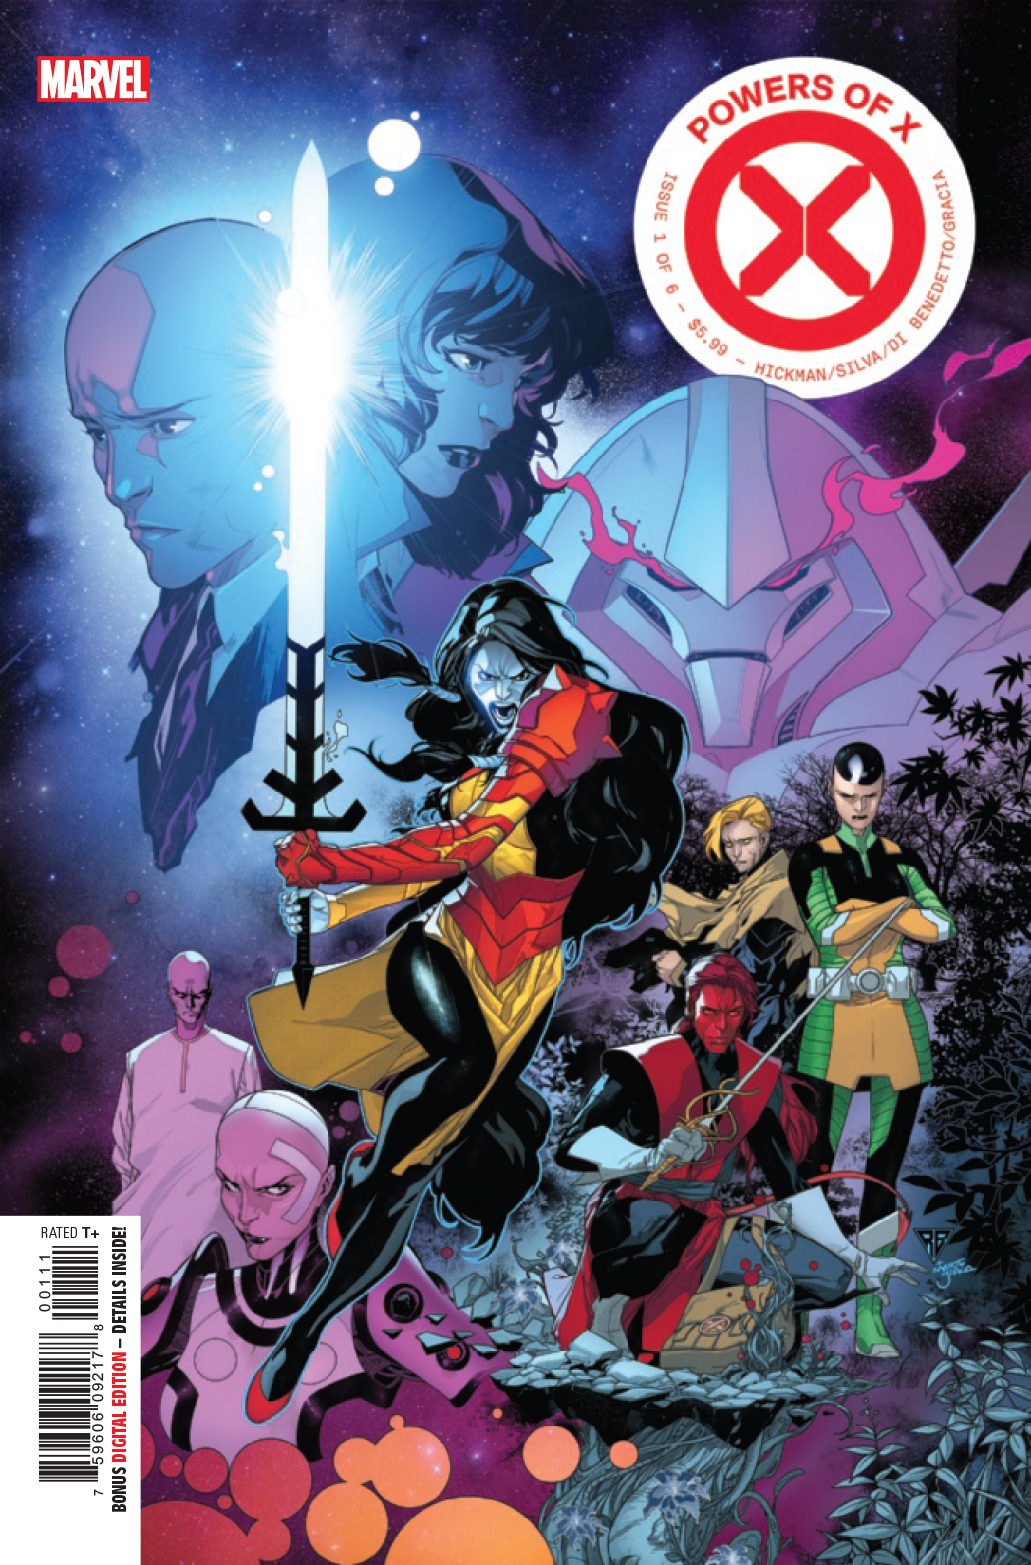 Powers of X no. 1 (1 of 6) (2019 Series)